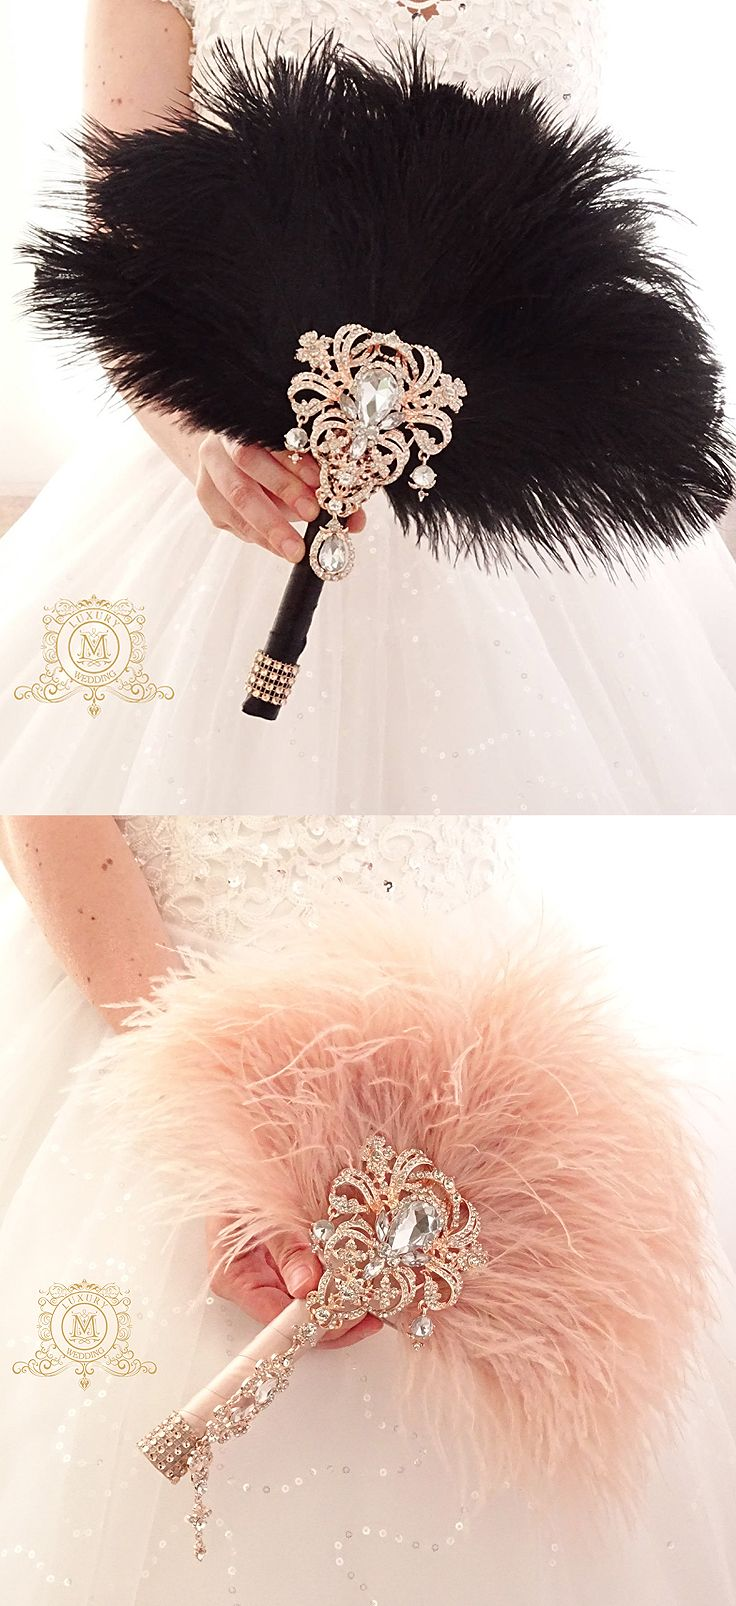 Bridal alternative Ostrich Feather Fan Bouquet Great Gatsby 1920s Art deco boho wedding. Lots designs and colours available. Downton Abbey Roaring 20s Party theme. Birthday, Weddings, Christmas Party ideas. Boutonniere for men available. #weddings #gatsby #roaring20s #gatsbyparty #affiliatelink #featherfan #bouquet #etsyfinds #vintagetheme